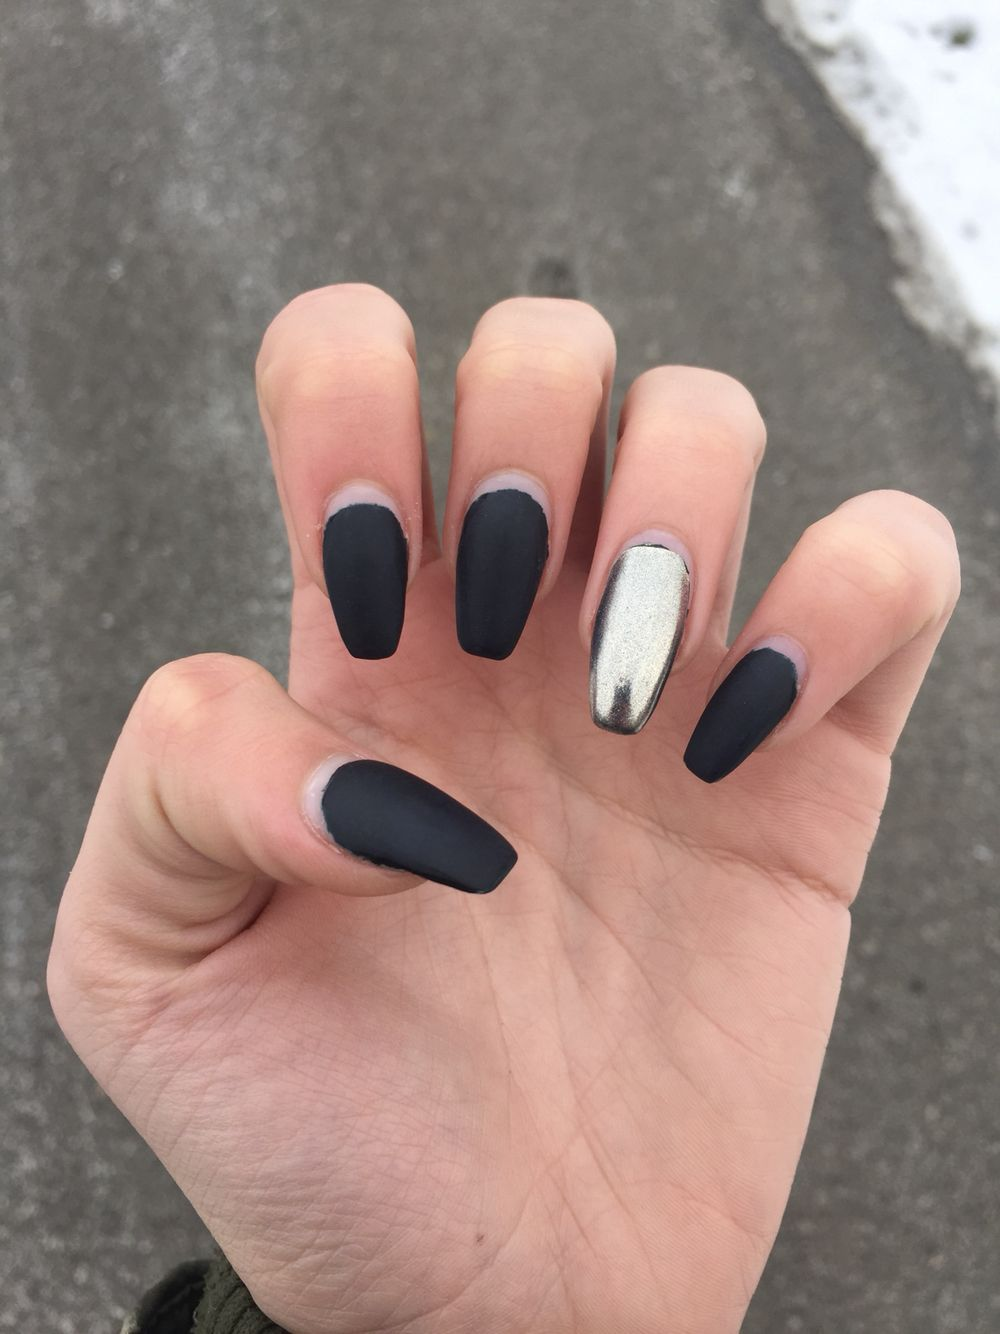 Black Gel Nails With One Silver Glitter Nail: #matte #black #coffin #chrome #gel #nails